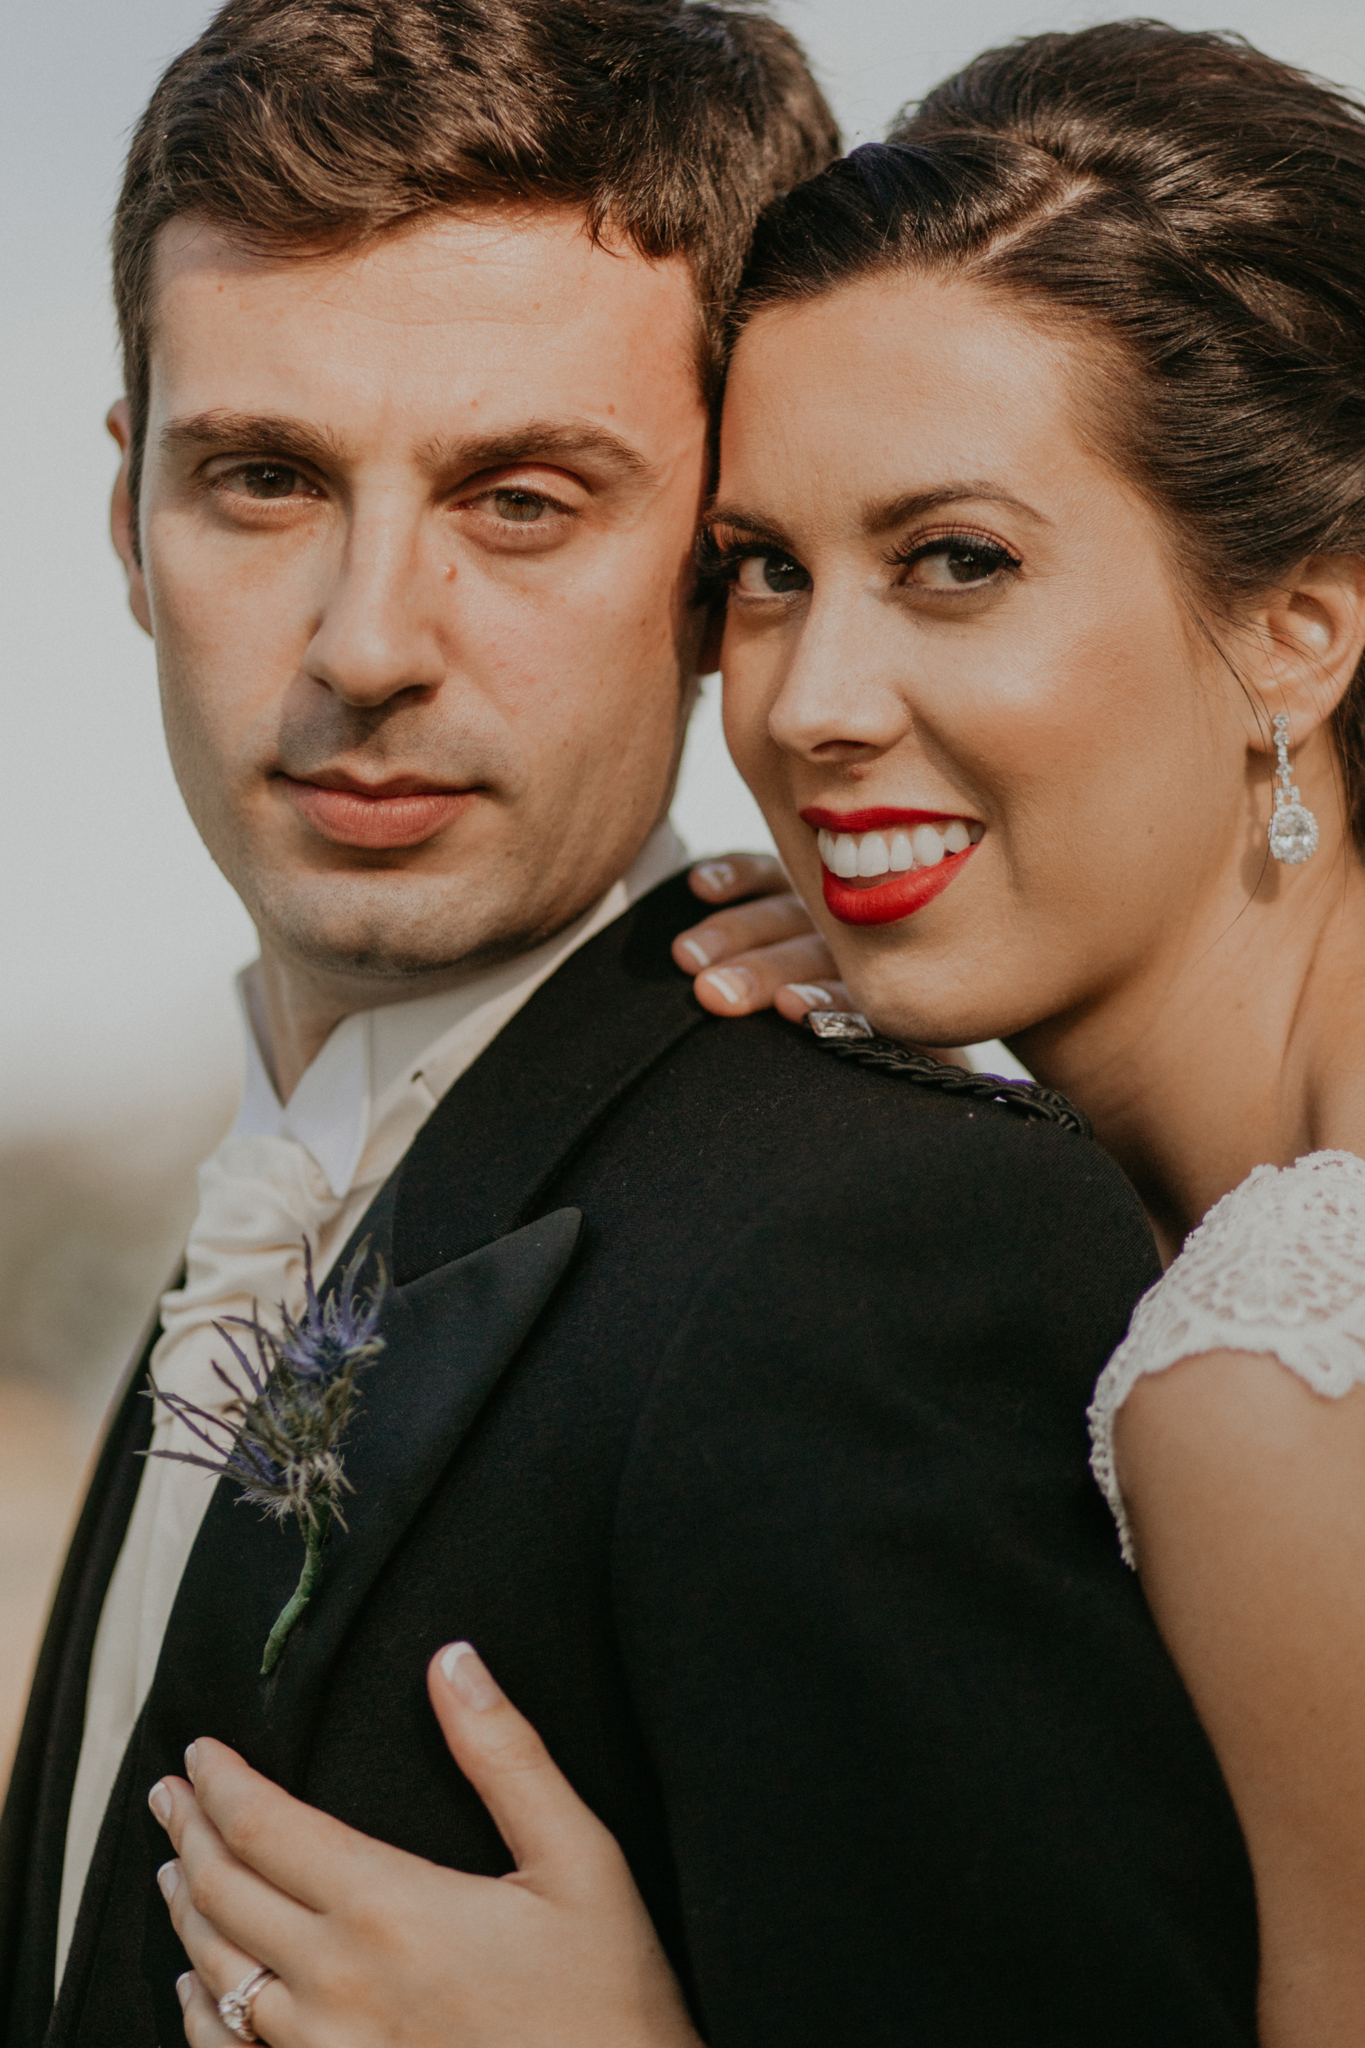 Portrait of bride and groom smiling close up romantic wedding photograph